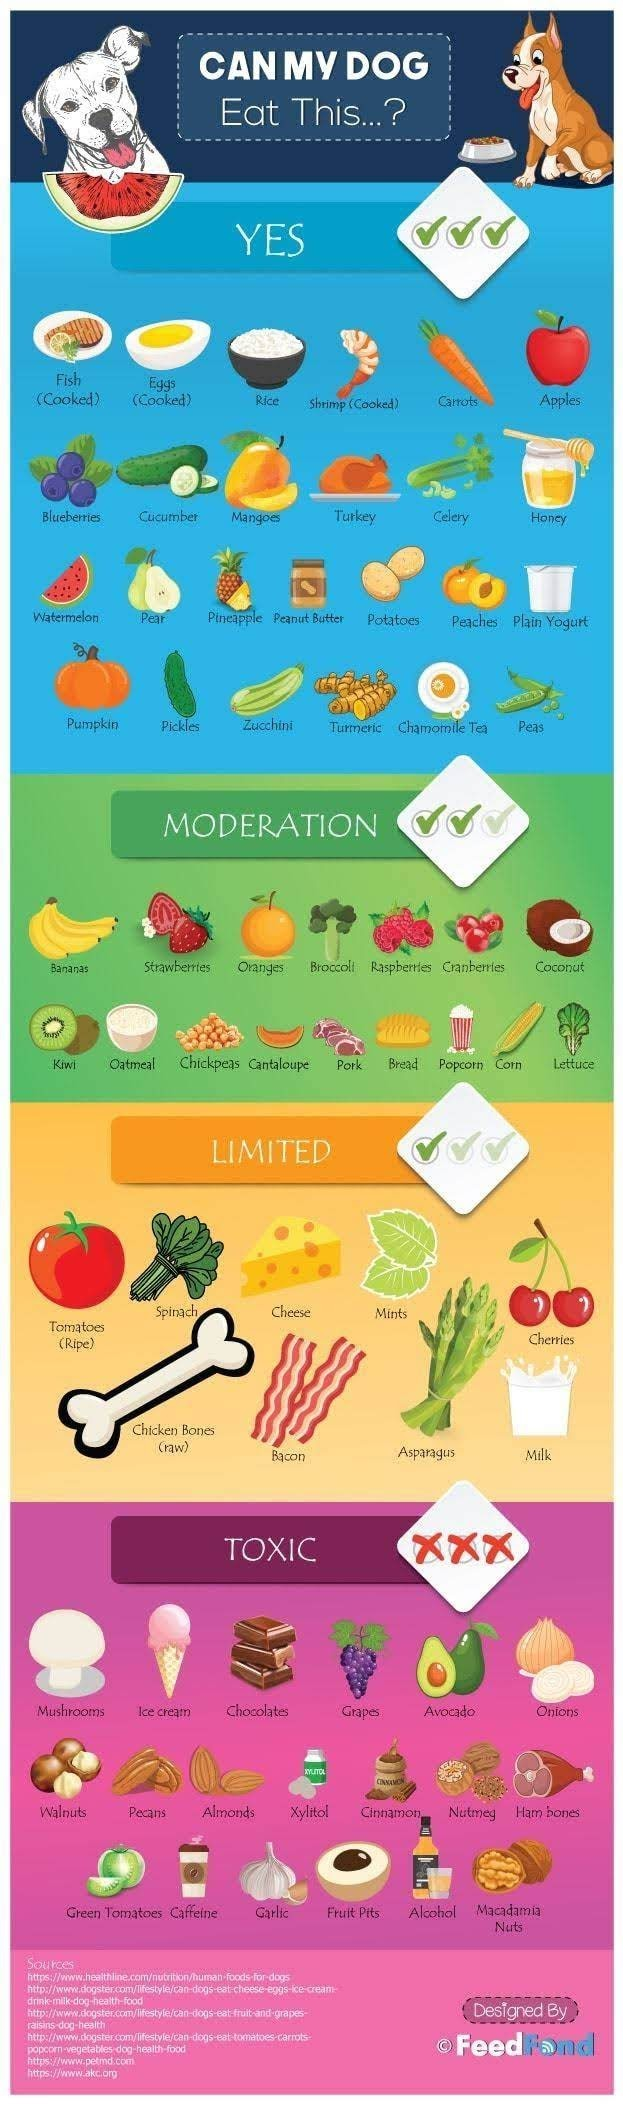 My dog can eat that #infographic